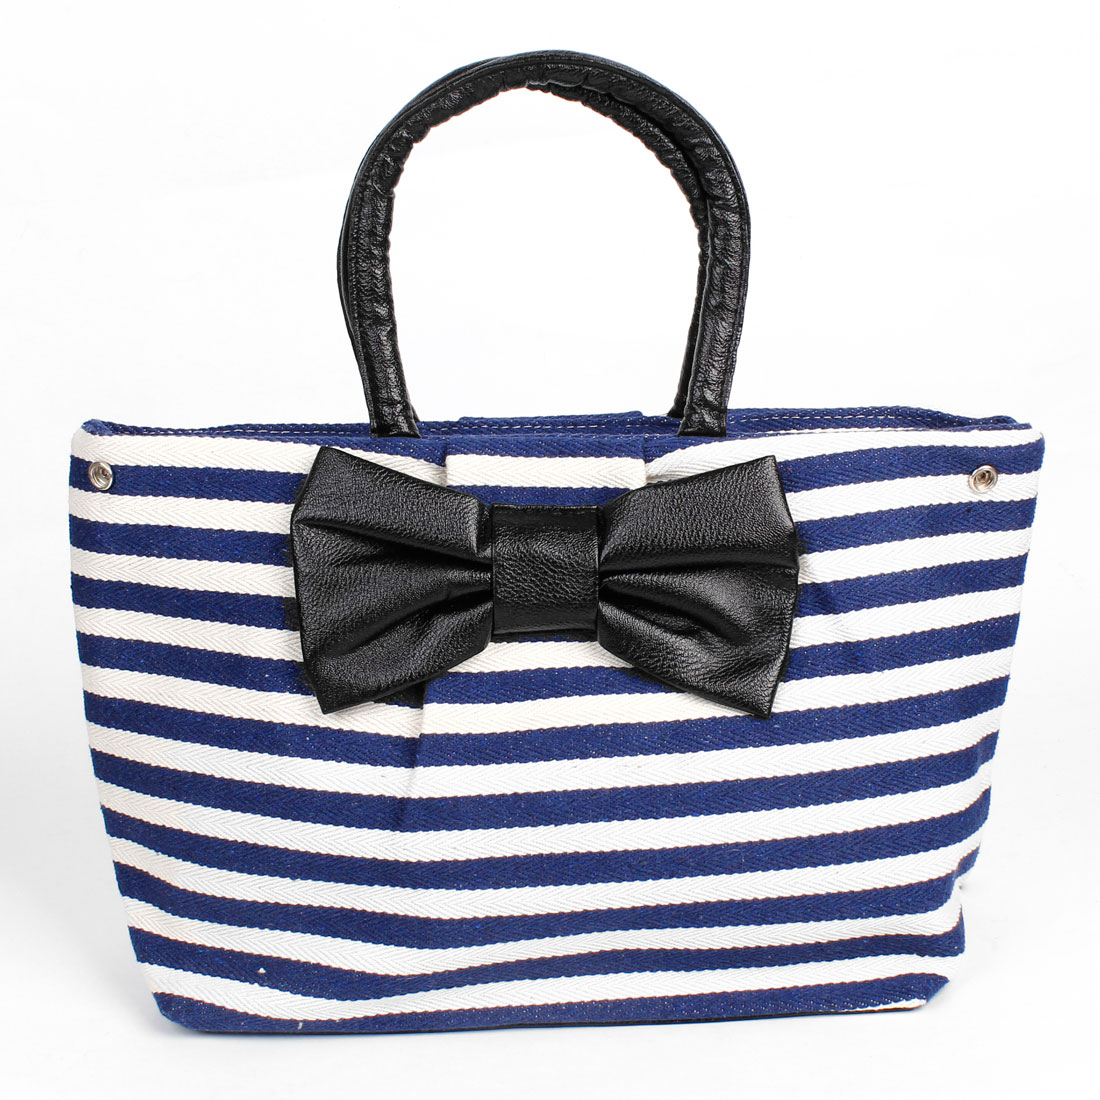 Lady Blue White Horizontal Strip Pattern Zipper Closure Bowknot Decor Handbag